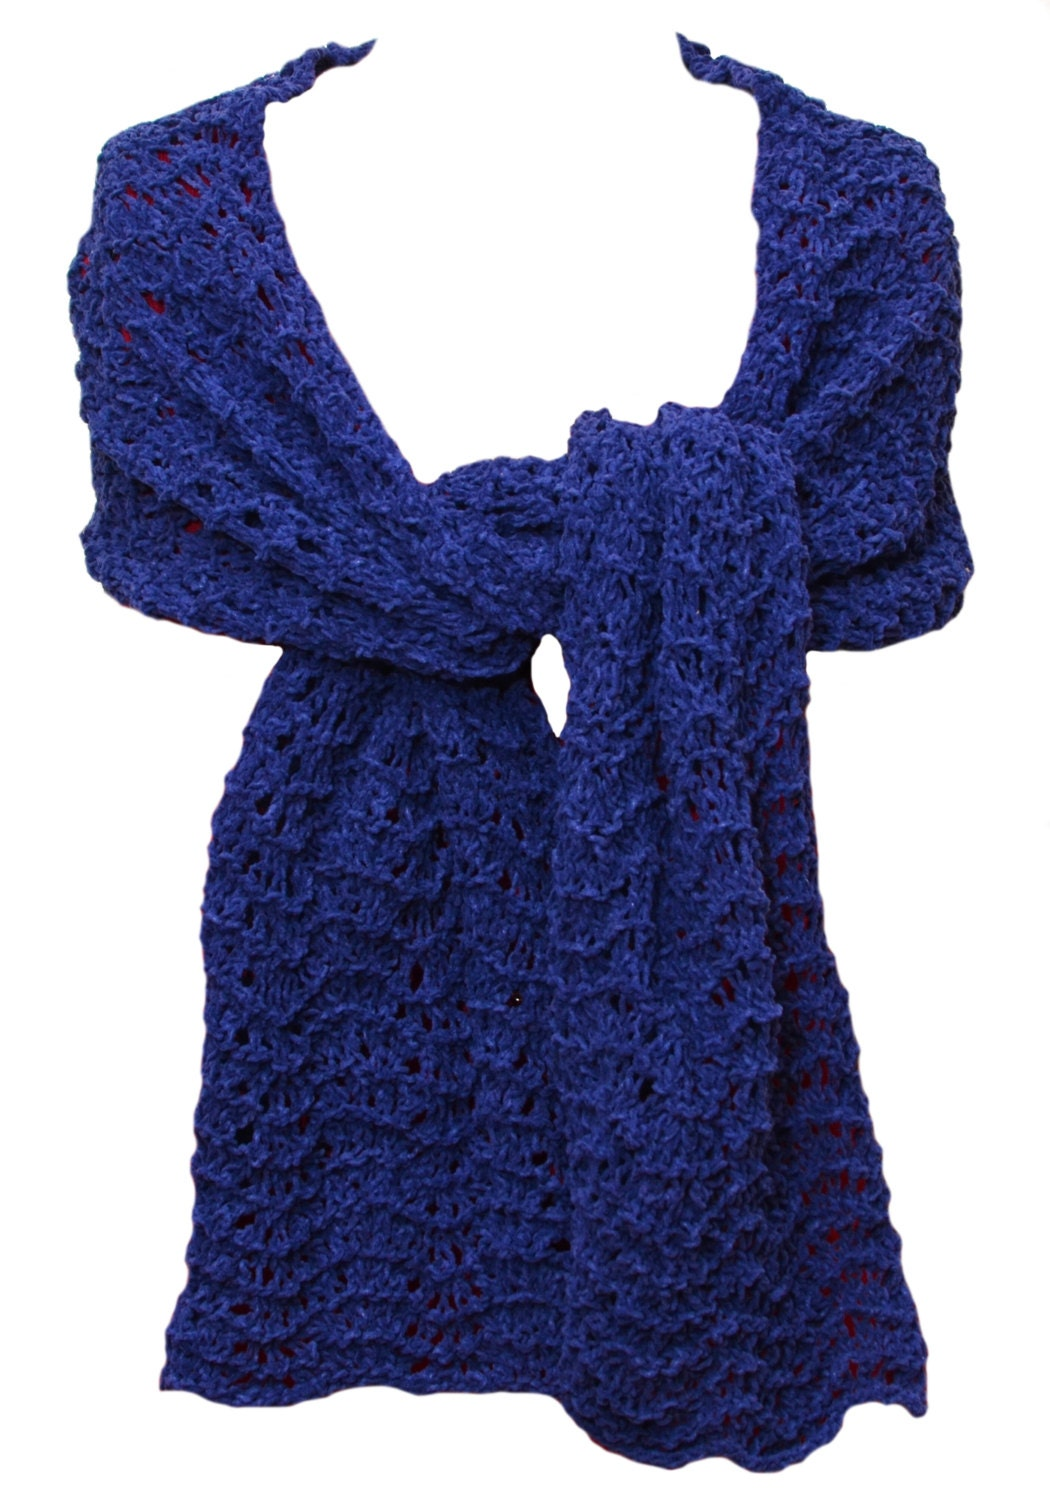 Knit Shawl or Scarf Blue Cotton Chenille by ...